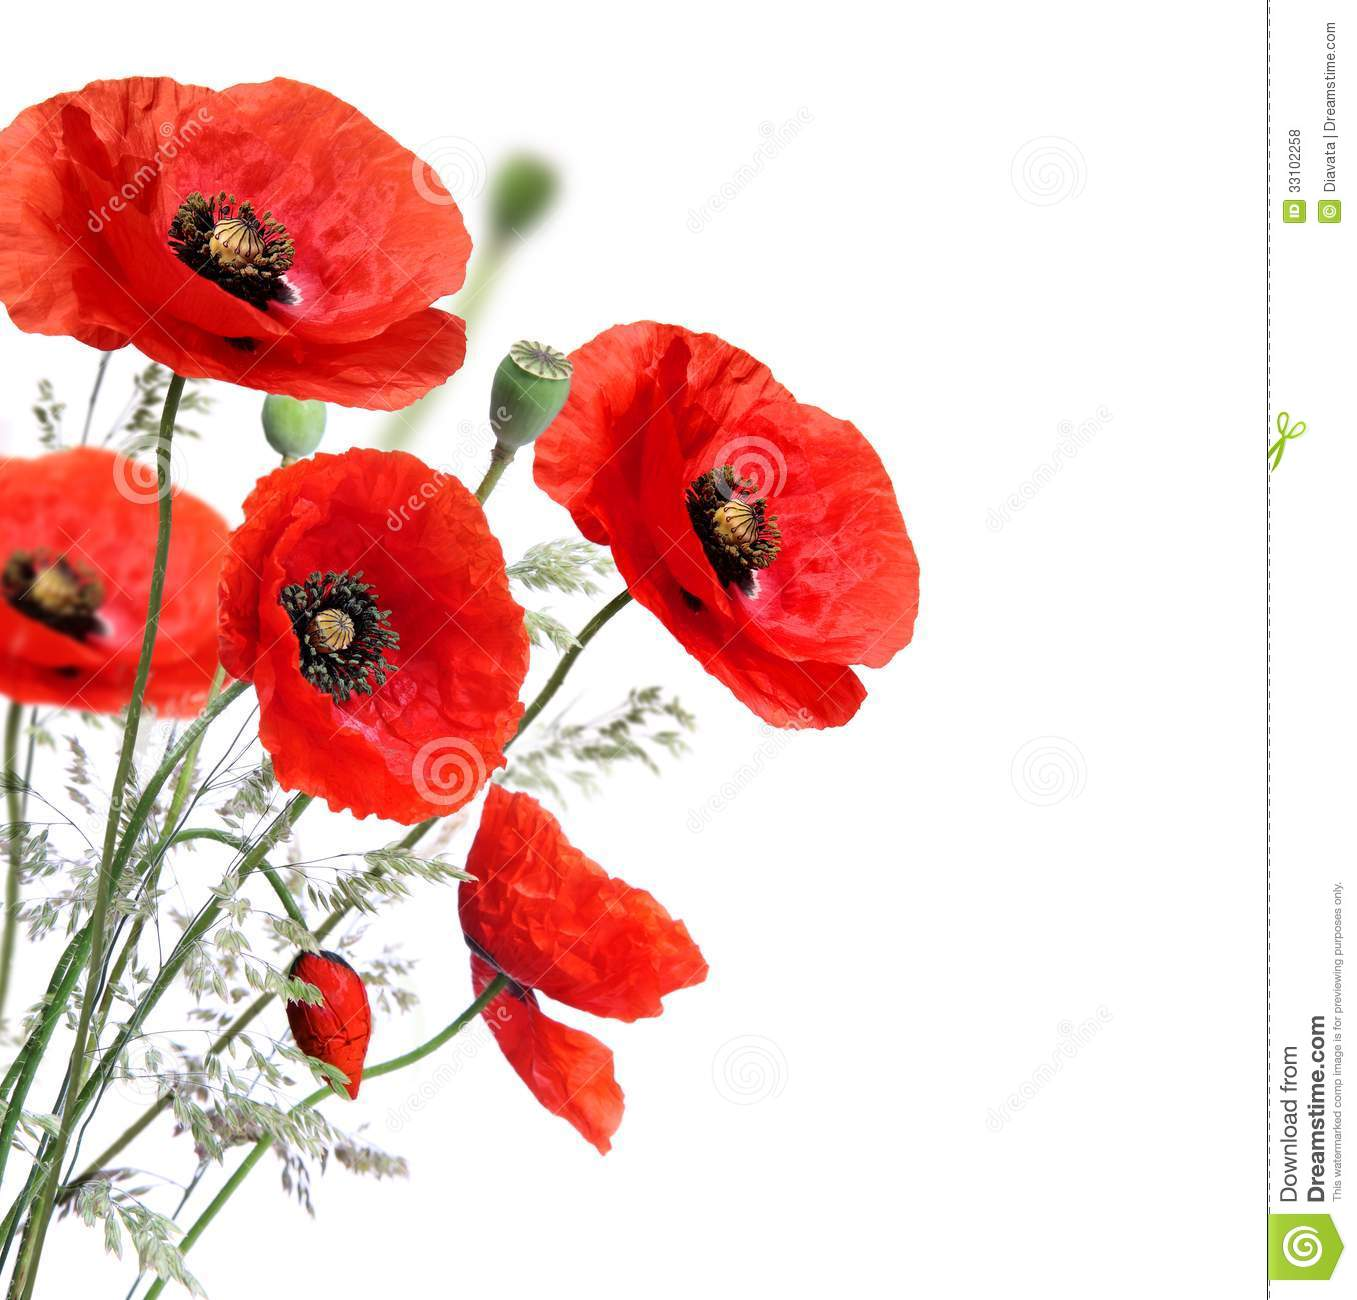 Poppy Stock Photos Download 94887 Images